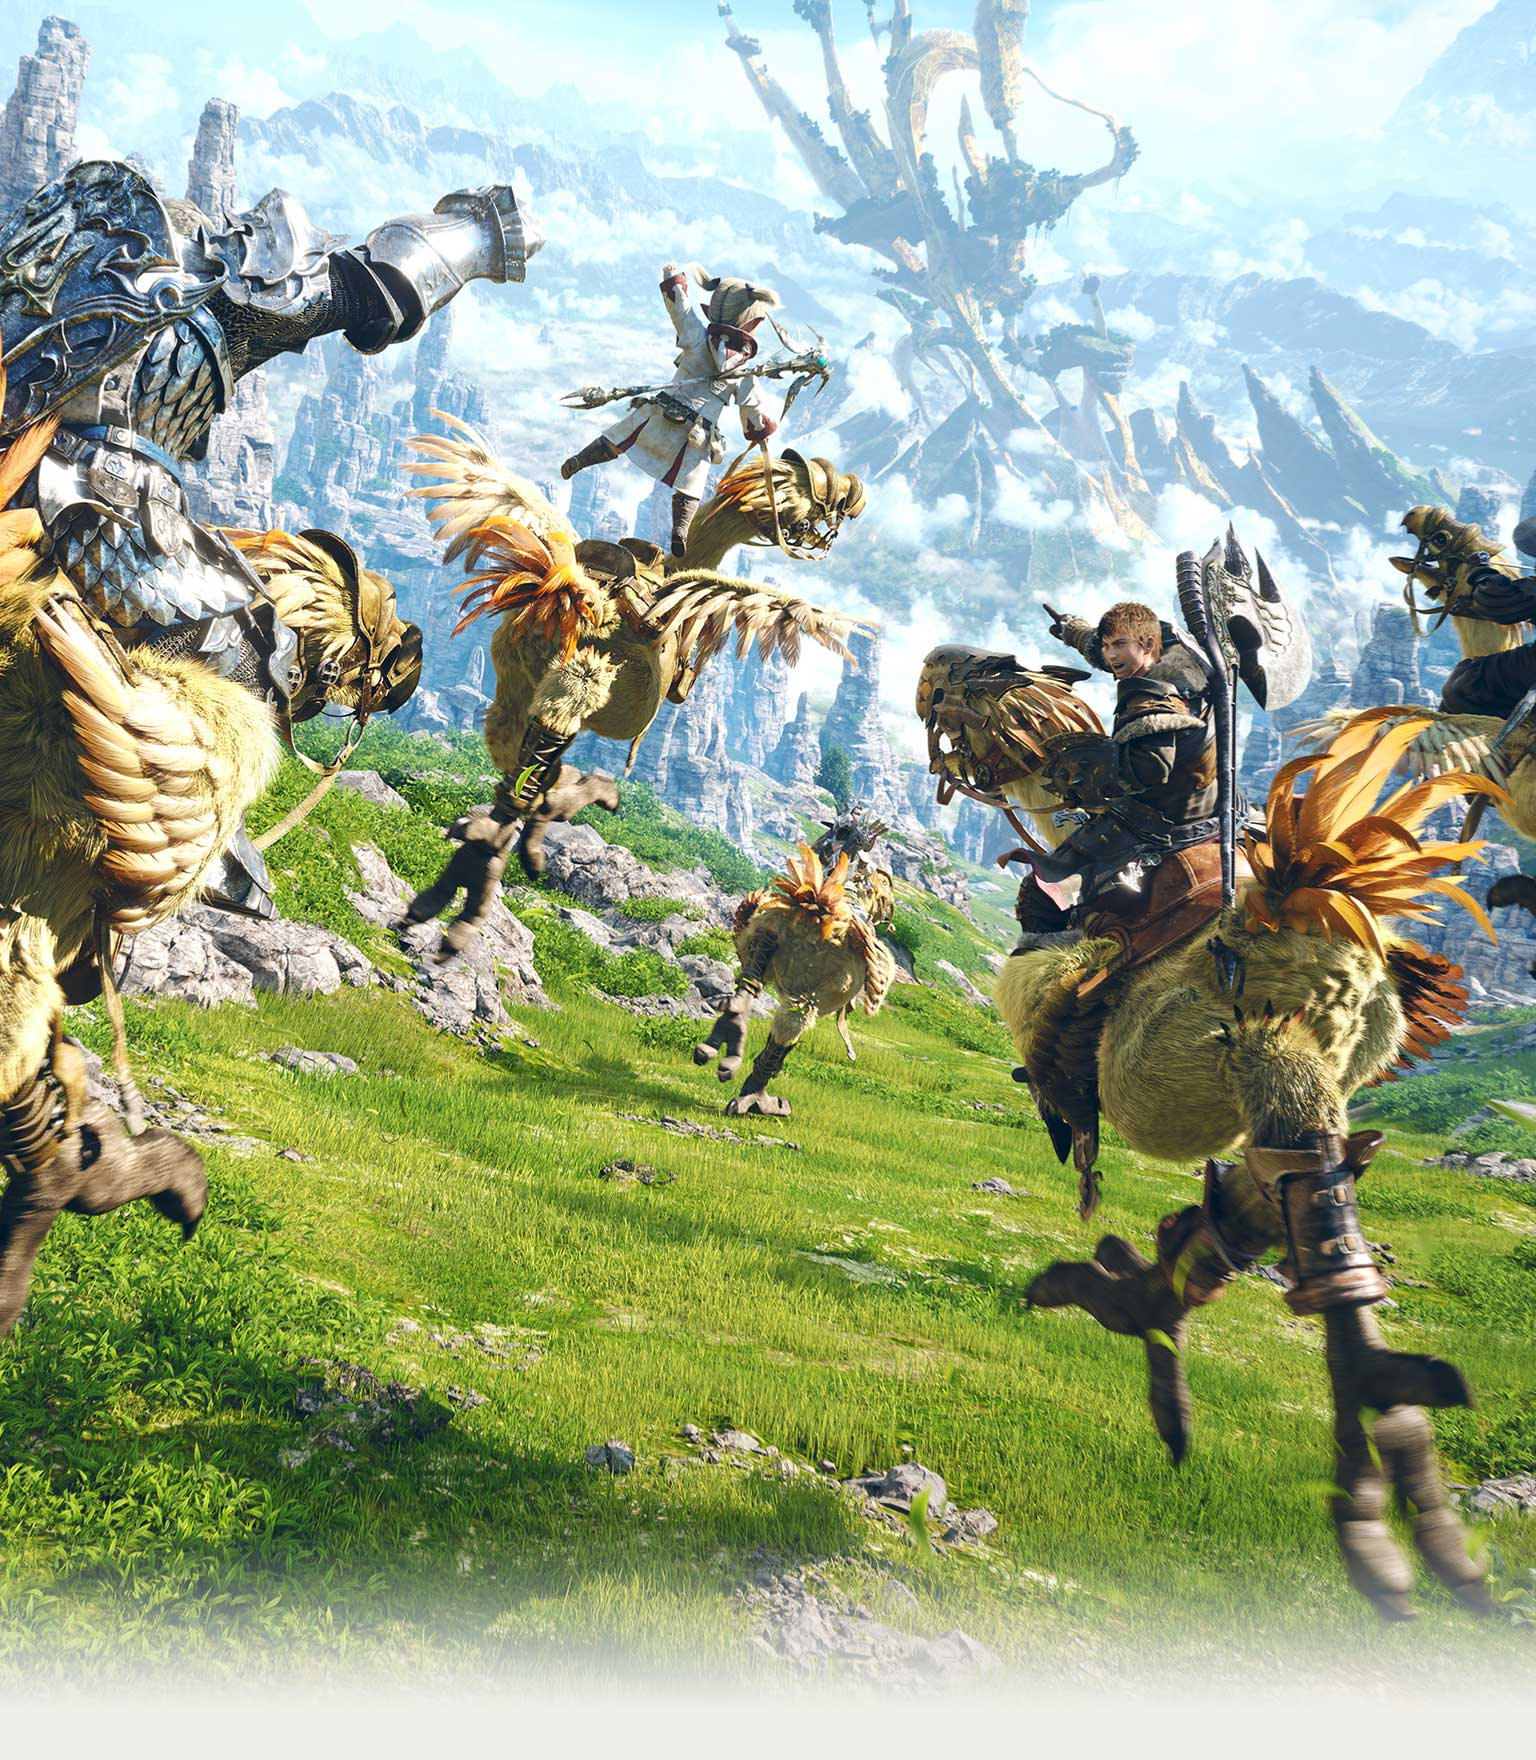 FINAL FANTASY XIV Promotional Site